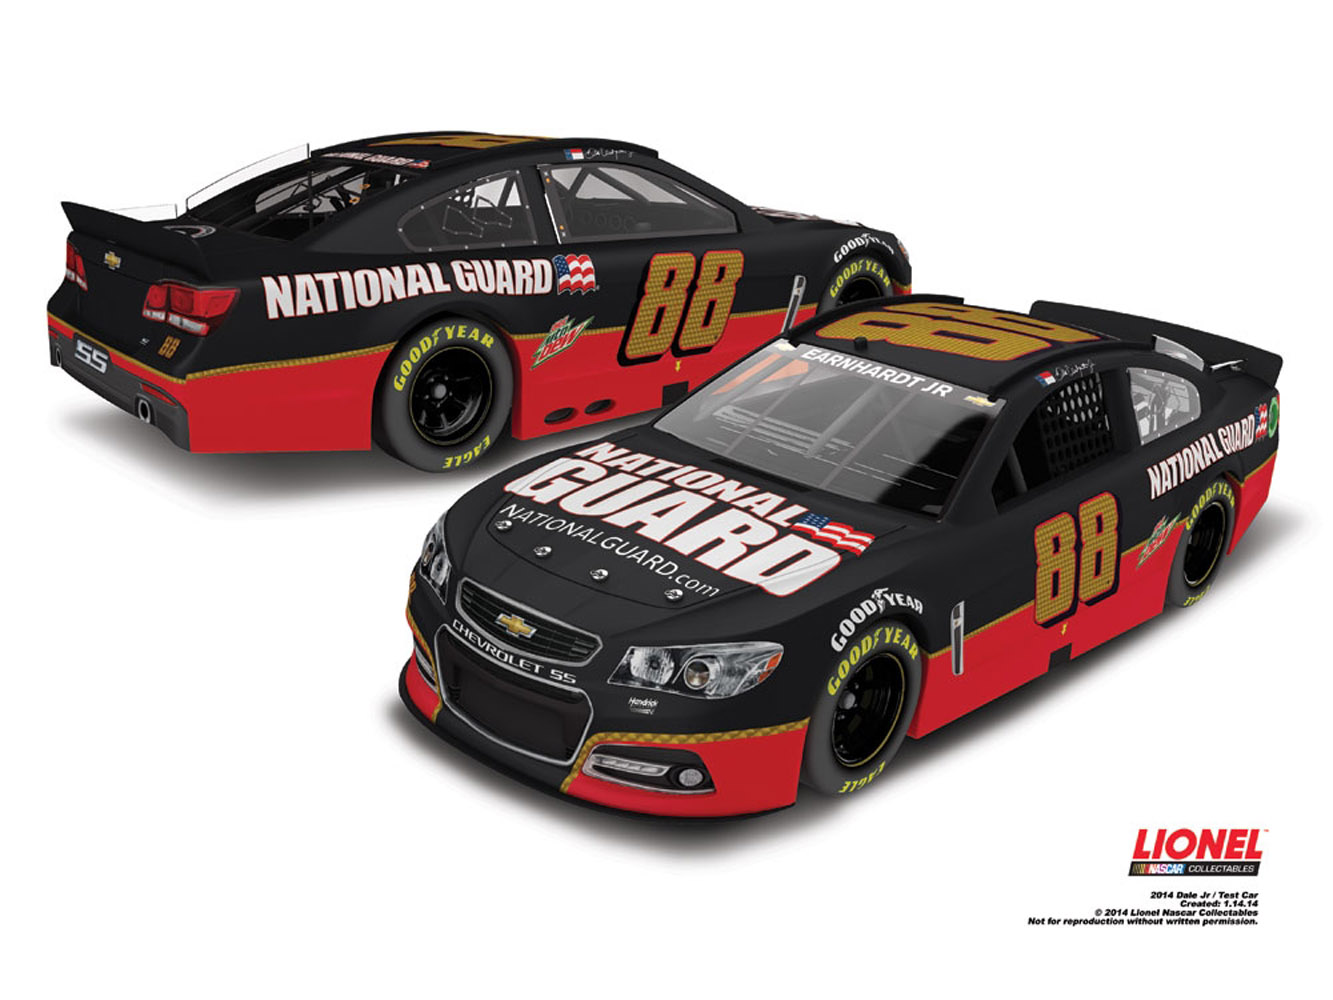 2014 Dale Earnhardt Jr National Guard HMS 30th Anniversary Test 1:24 Diecast Car